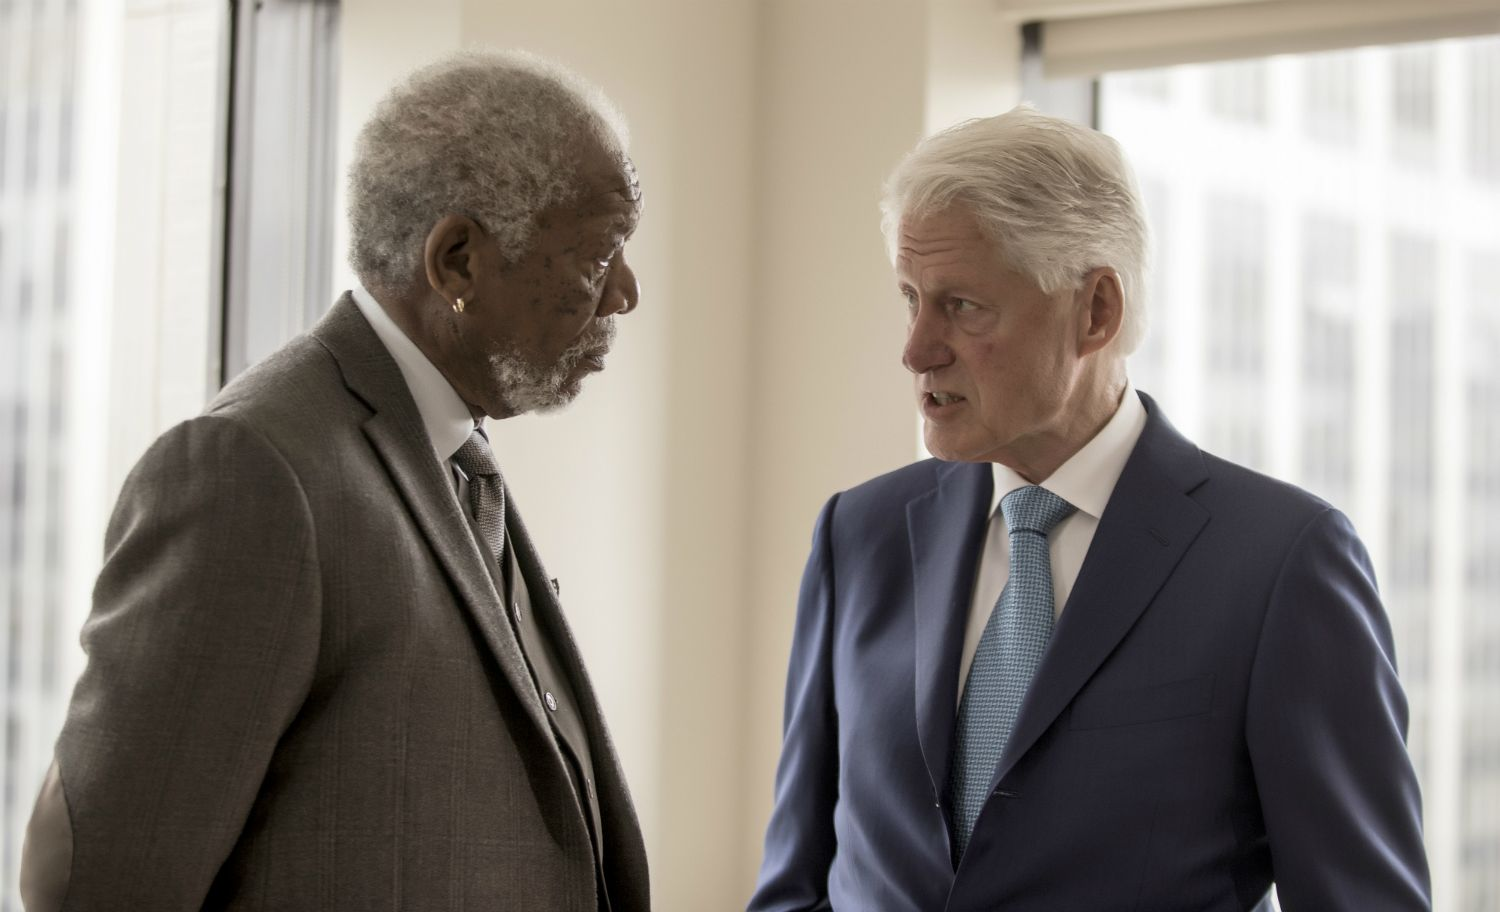 Morgan Freeman: Mankind will perish if we don't learn to live together